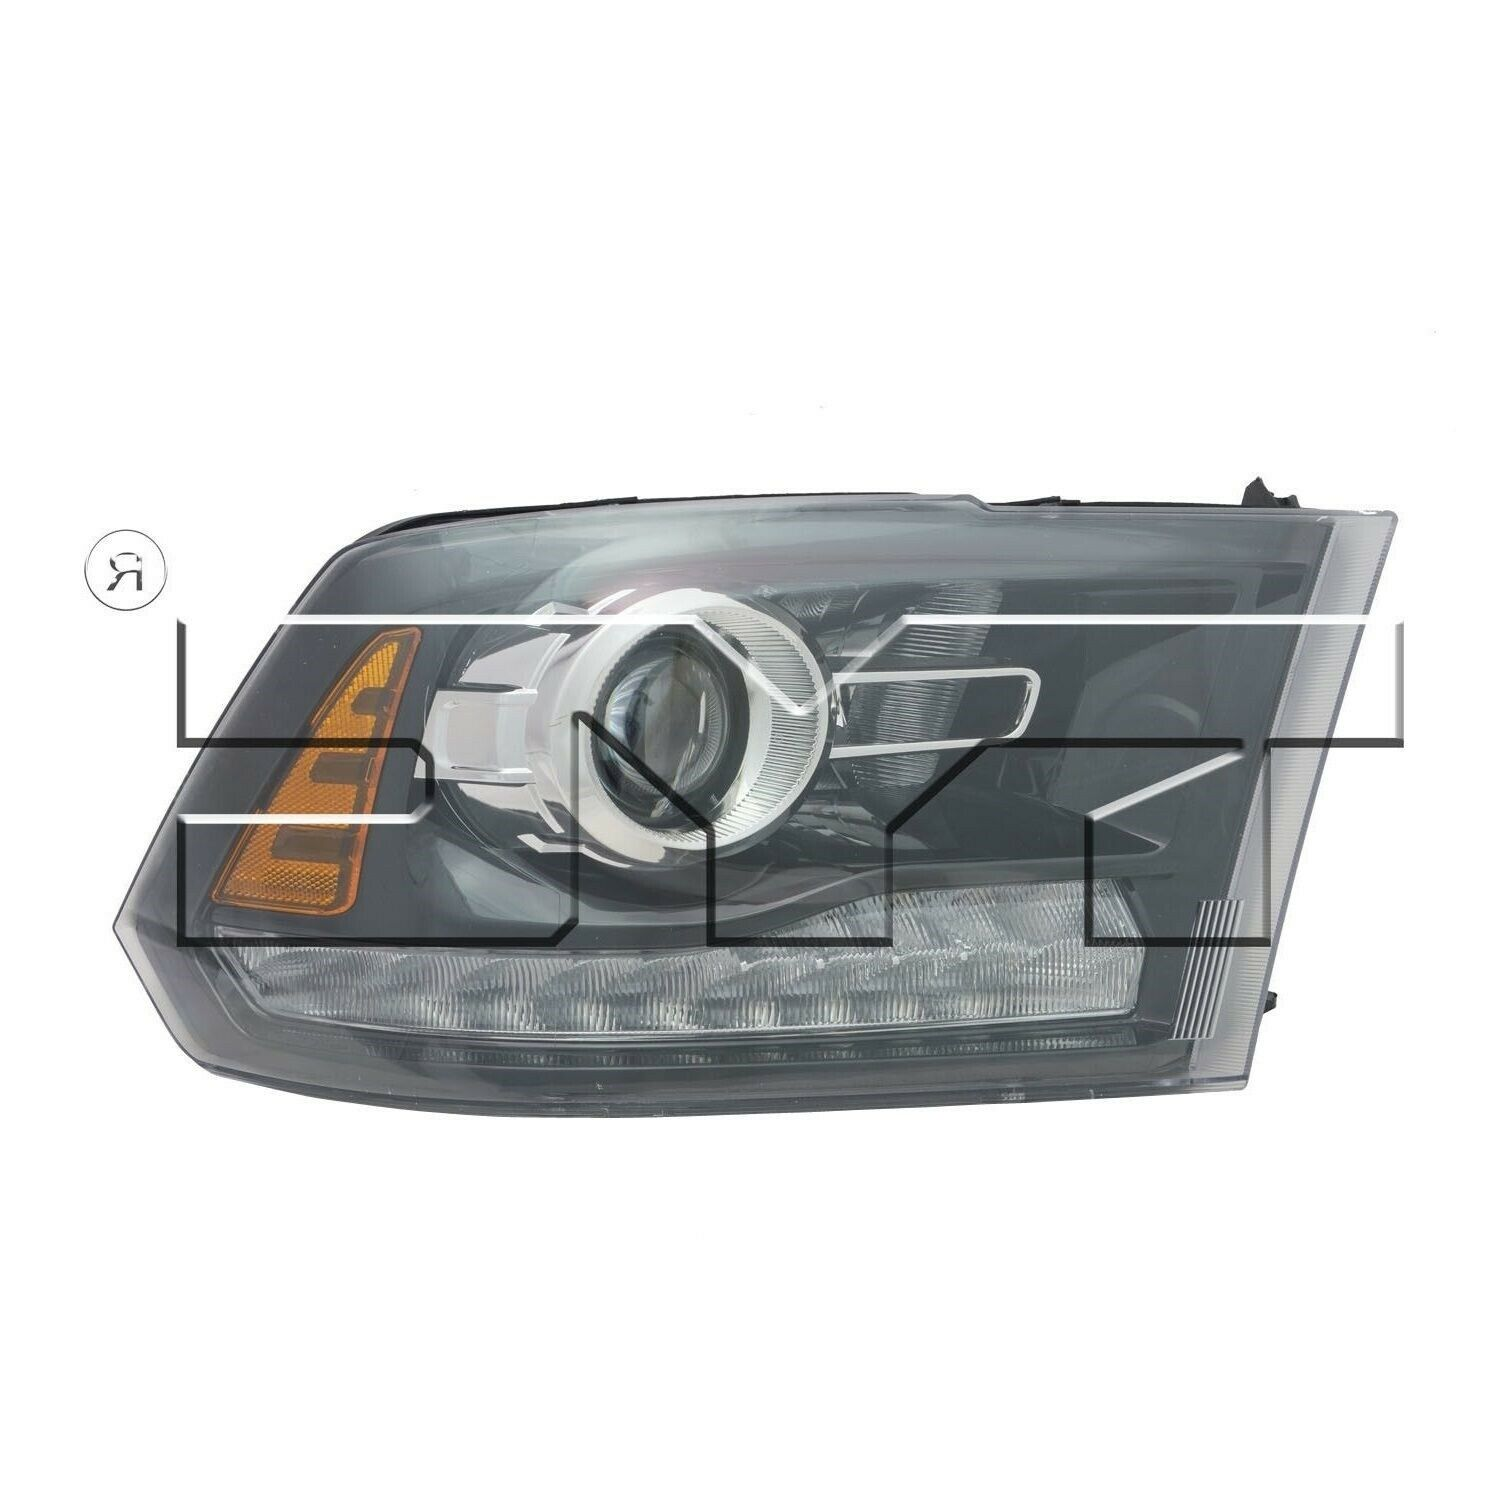 Right Side Projector Headlights For 2013 2015 Dodge Ram 1500 2500 2014 3500 1 Of 1only 3 Available